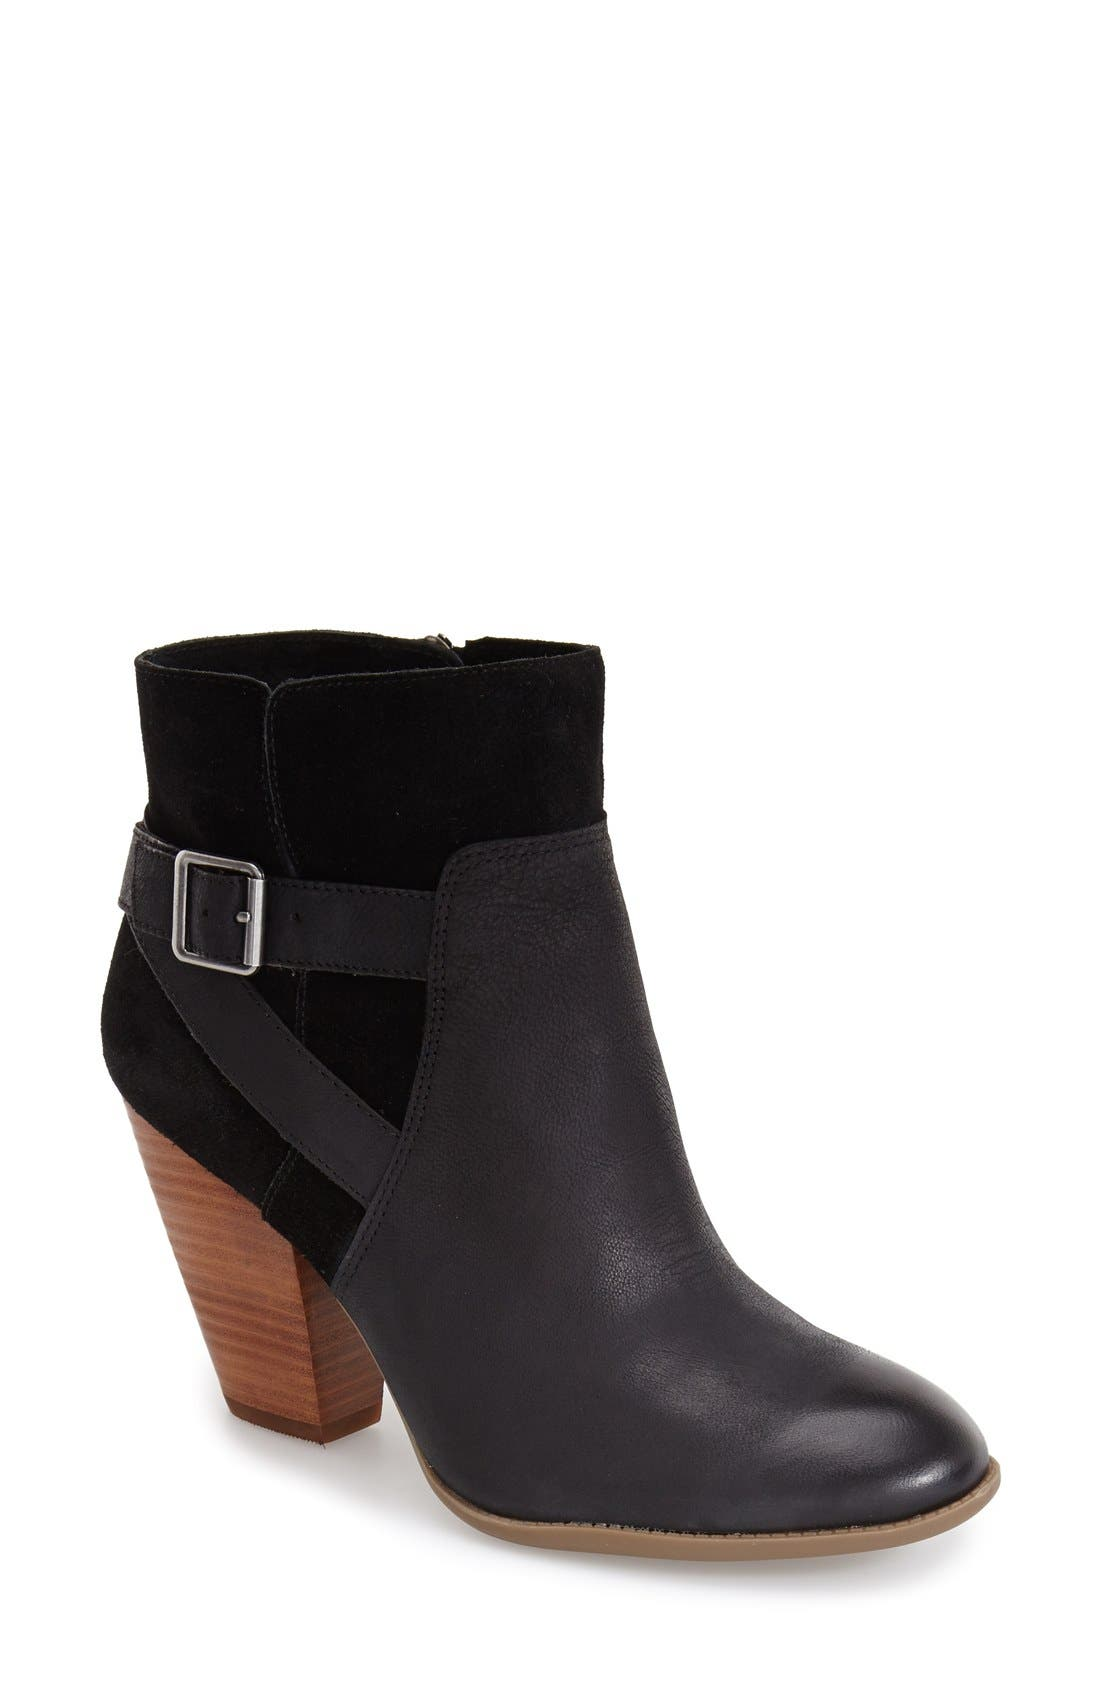 Main Image - Sole Society 'Hollie' Bootie (Women)